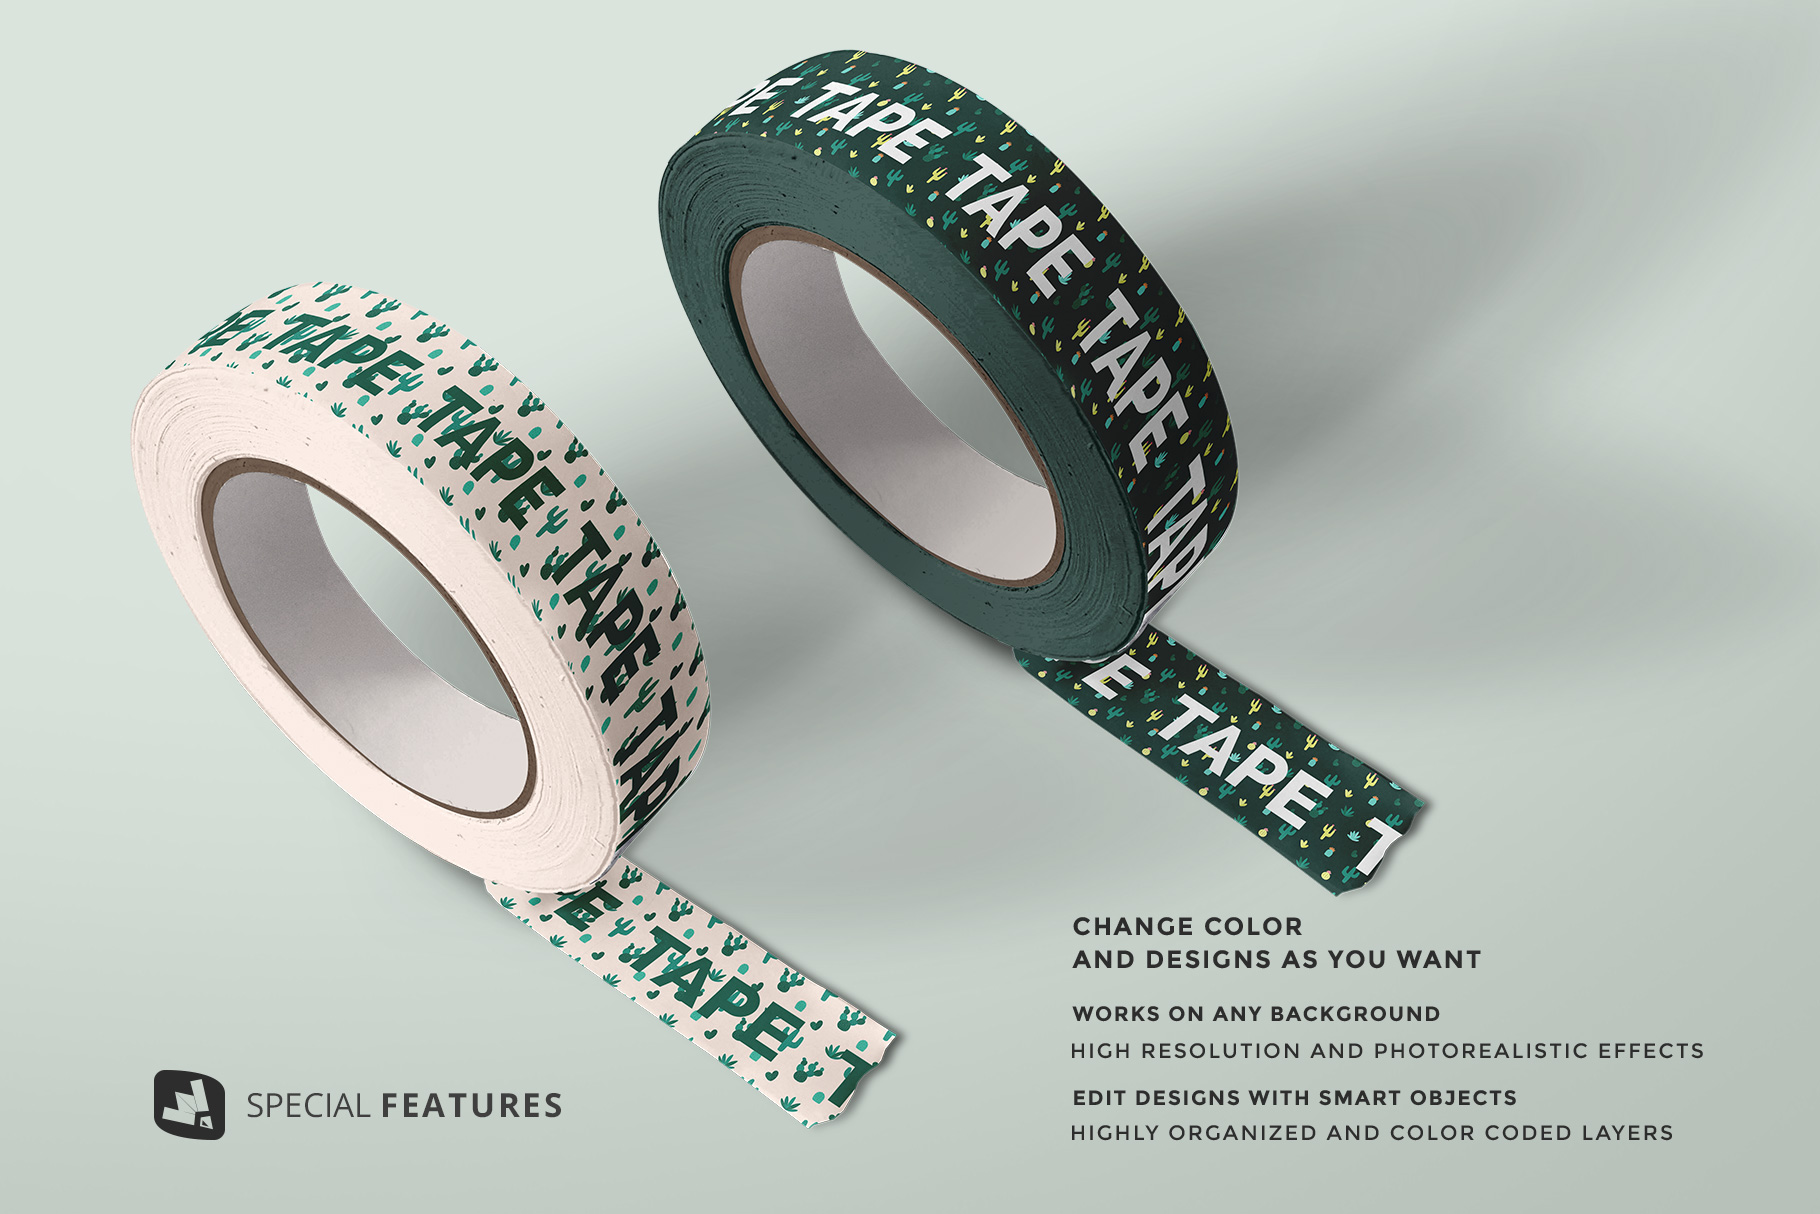 special features of the themed washi tape roll mockup